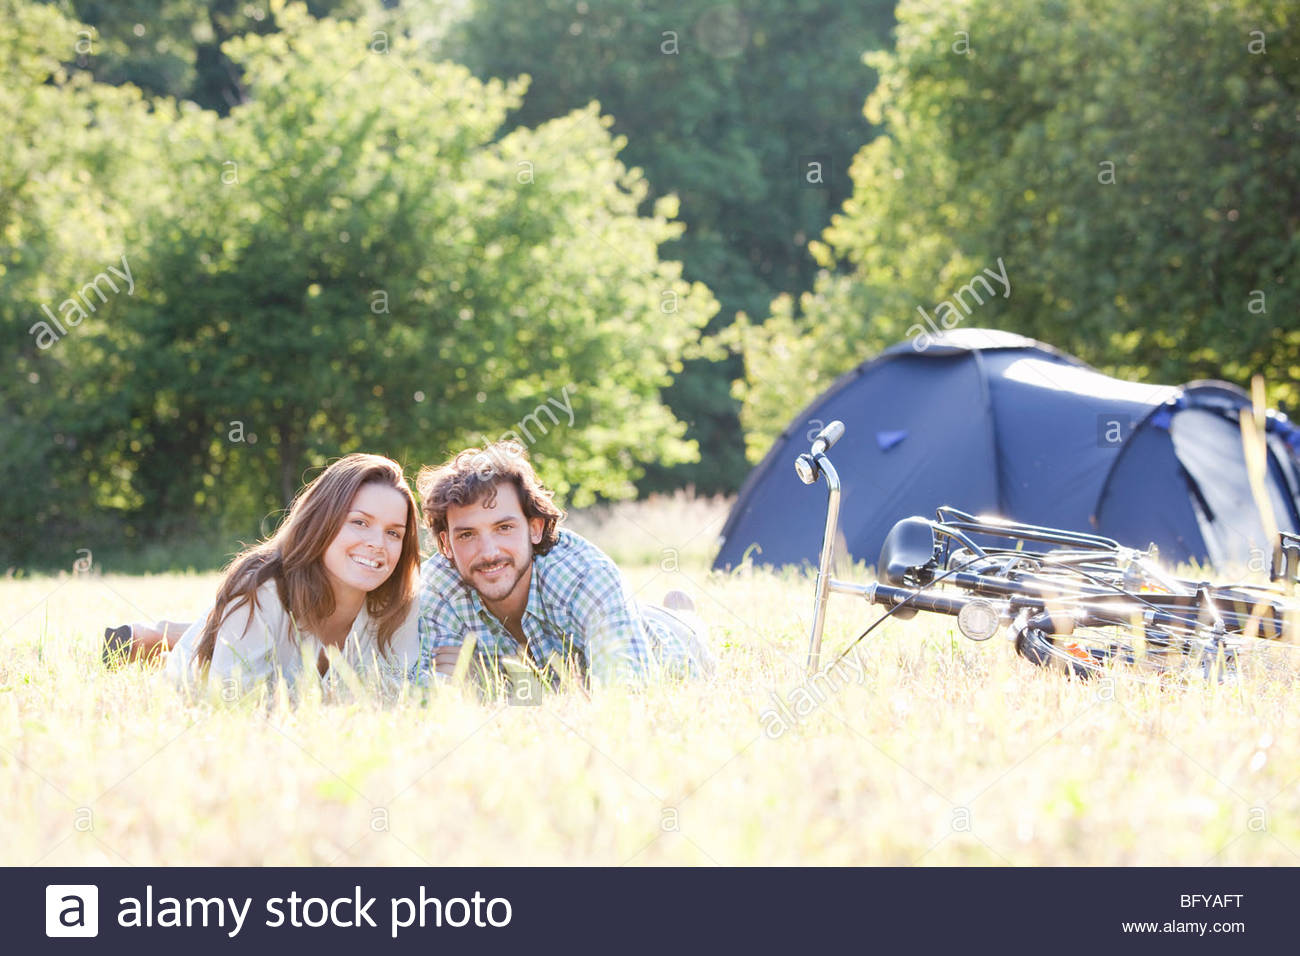 Couple laying in grass in country scene - Stock Image